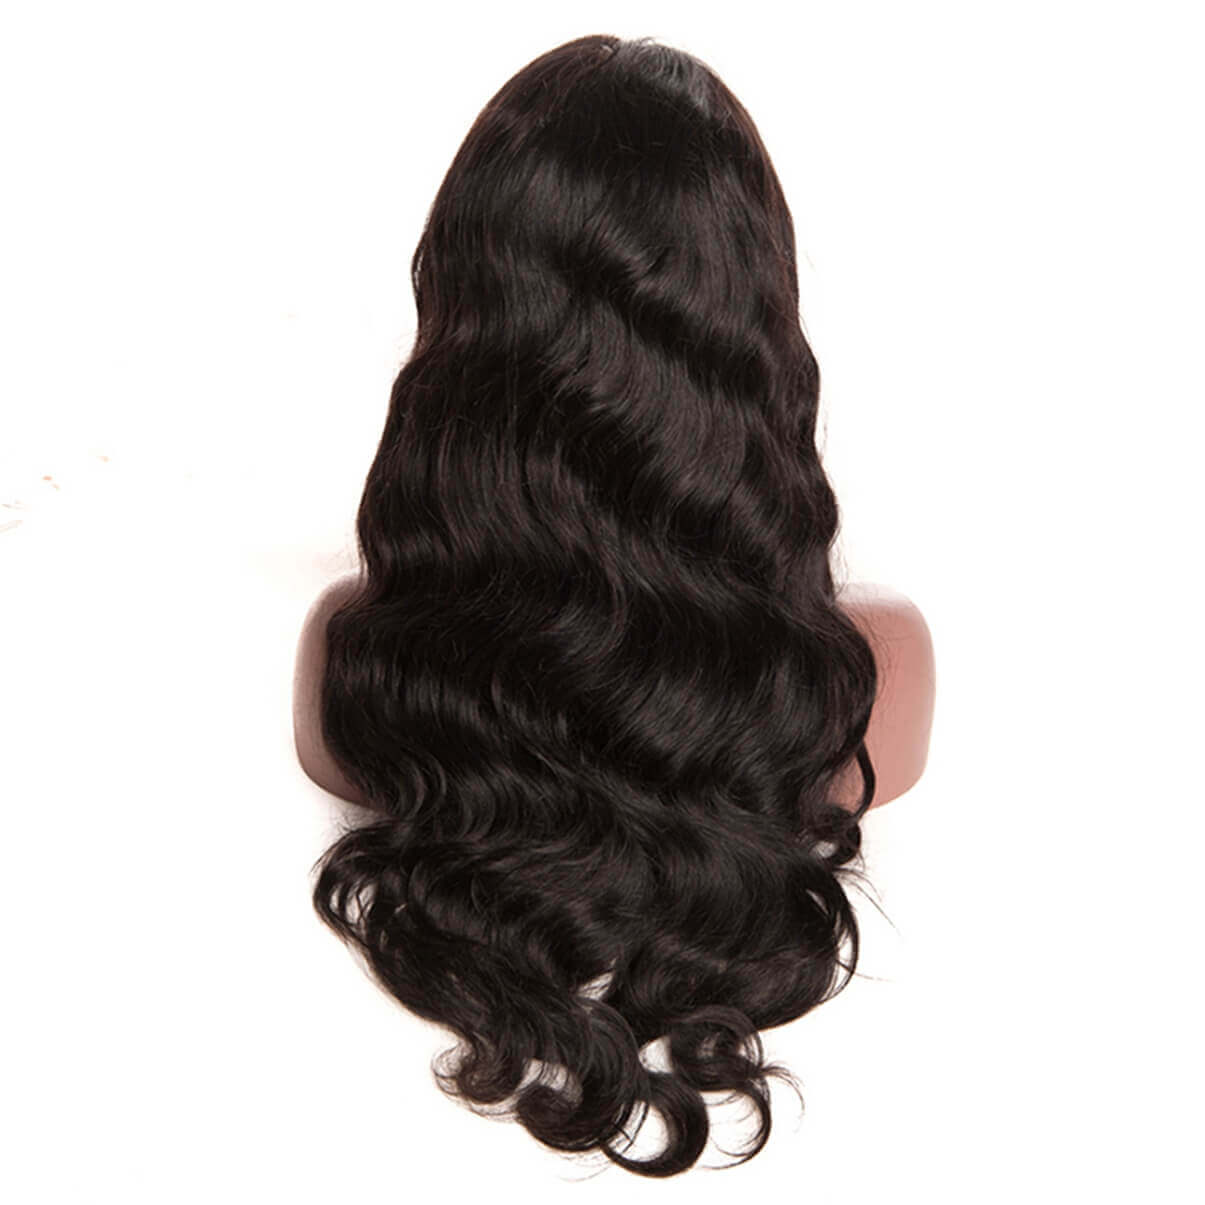 Lakihair Loose Wave Lace Front Wigs 180% Full Density 100% Virgin Human Hair Wigs With Baby Hair